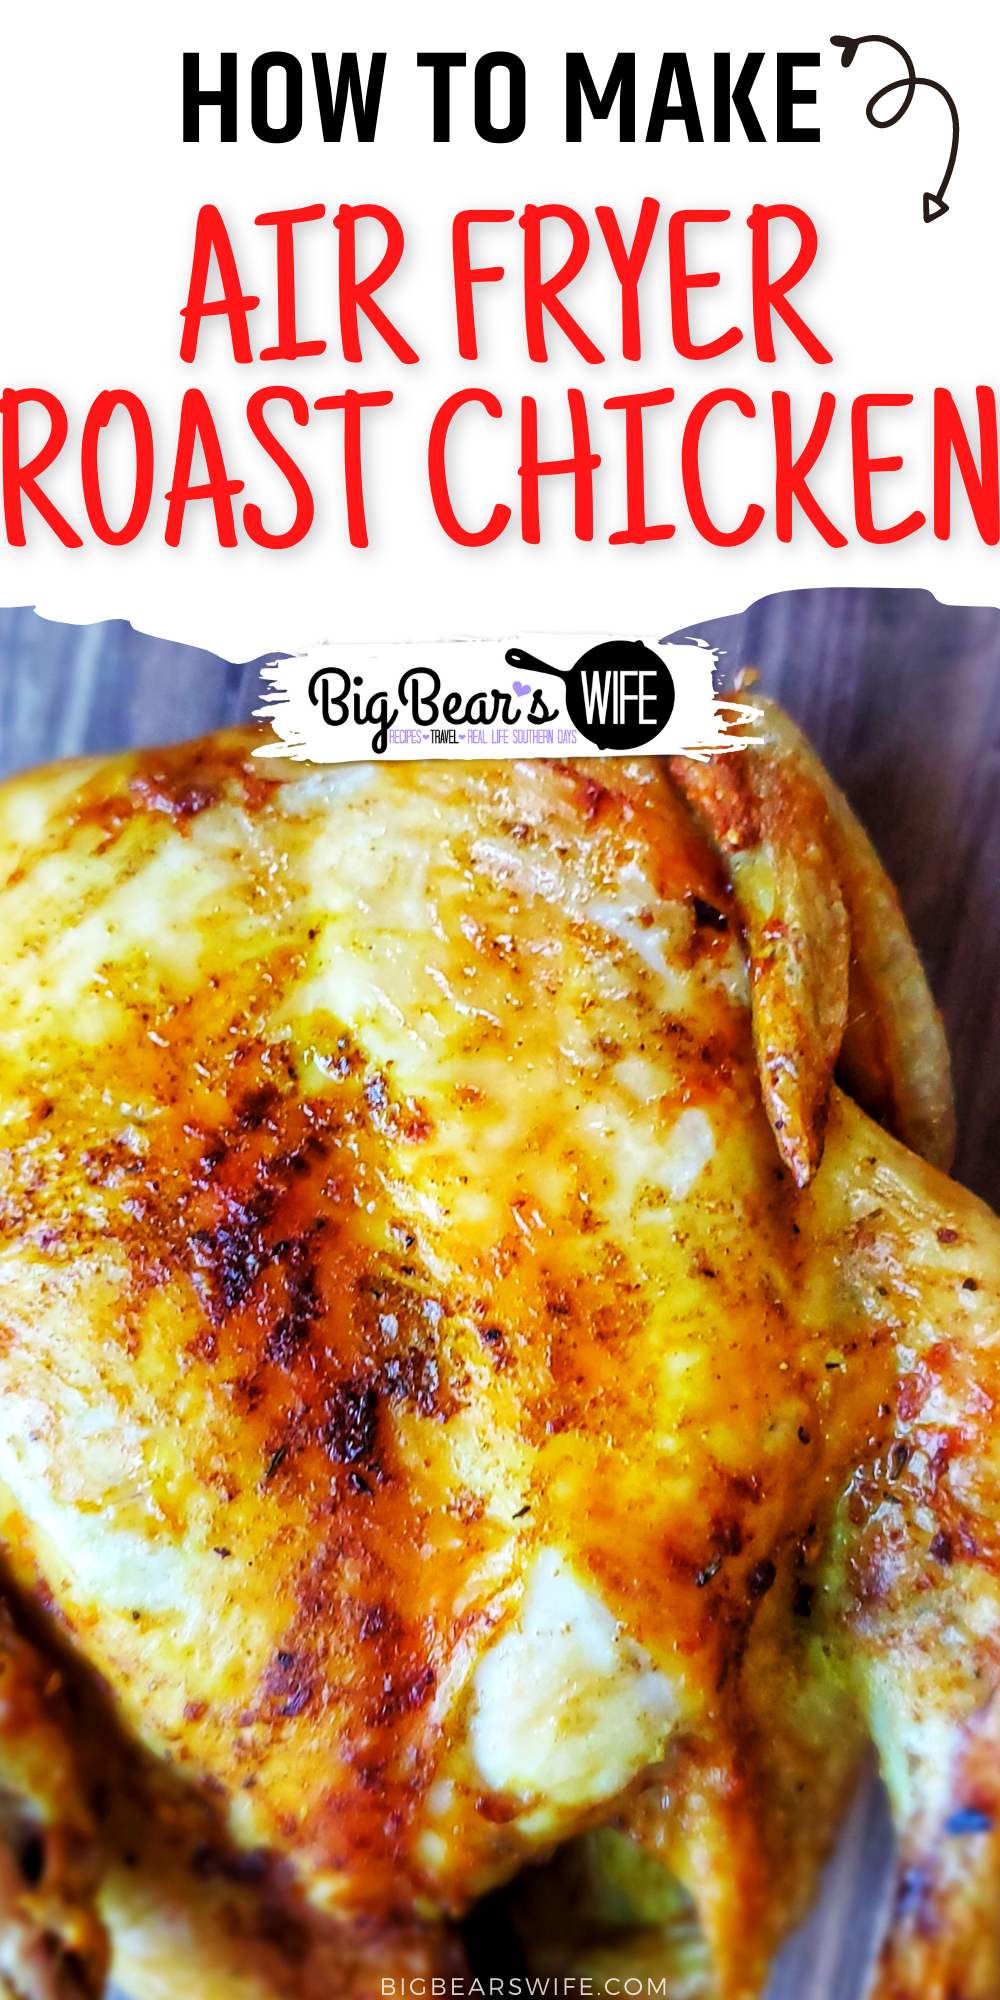 Have you cooked a whole chicken in the air fryer? If not, you need too! Air Fryer Roast Chicken is so easy and taste almost like a rotisserie chicken! via @bigbearswife